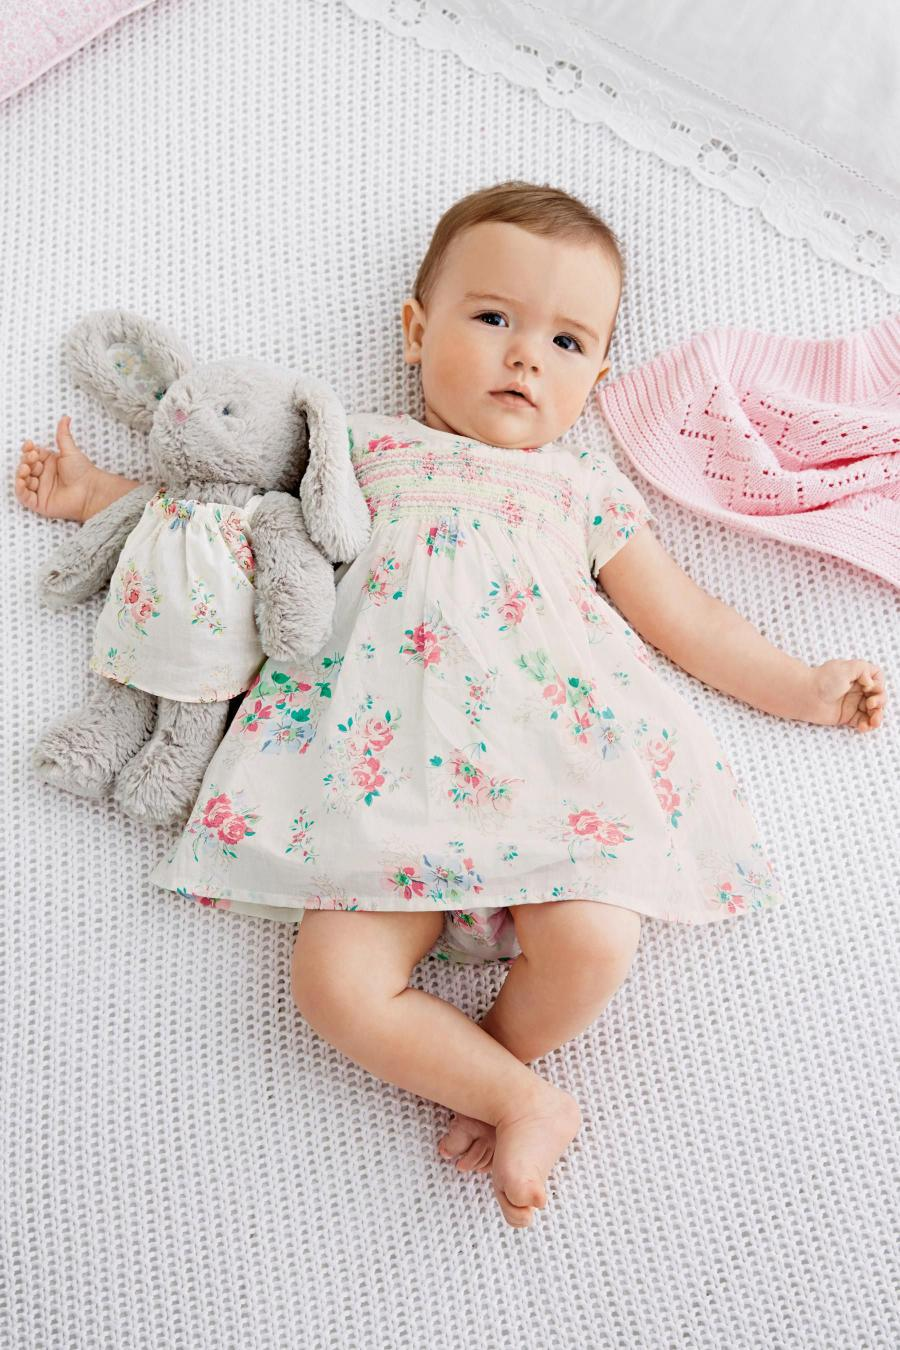 Create a stylish wardrobe for your little girl with the new arrivals in Ralph Lauren's latest collection of baby girl clothes. Find baby gowns, dresses, bottoms, tops, shoes, and accessories - discover the newest styles for the perfect gifts for girls aged months.